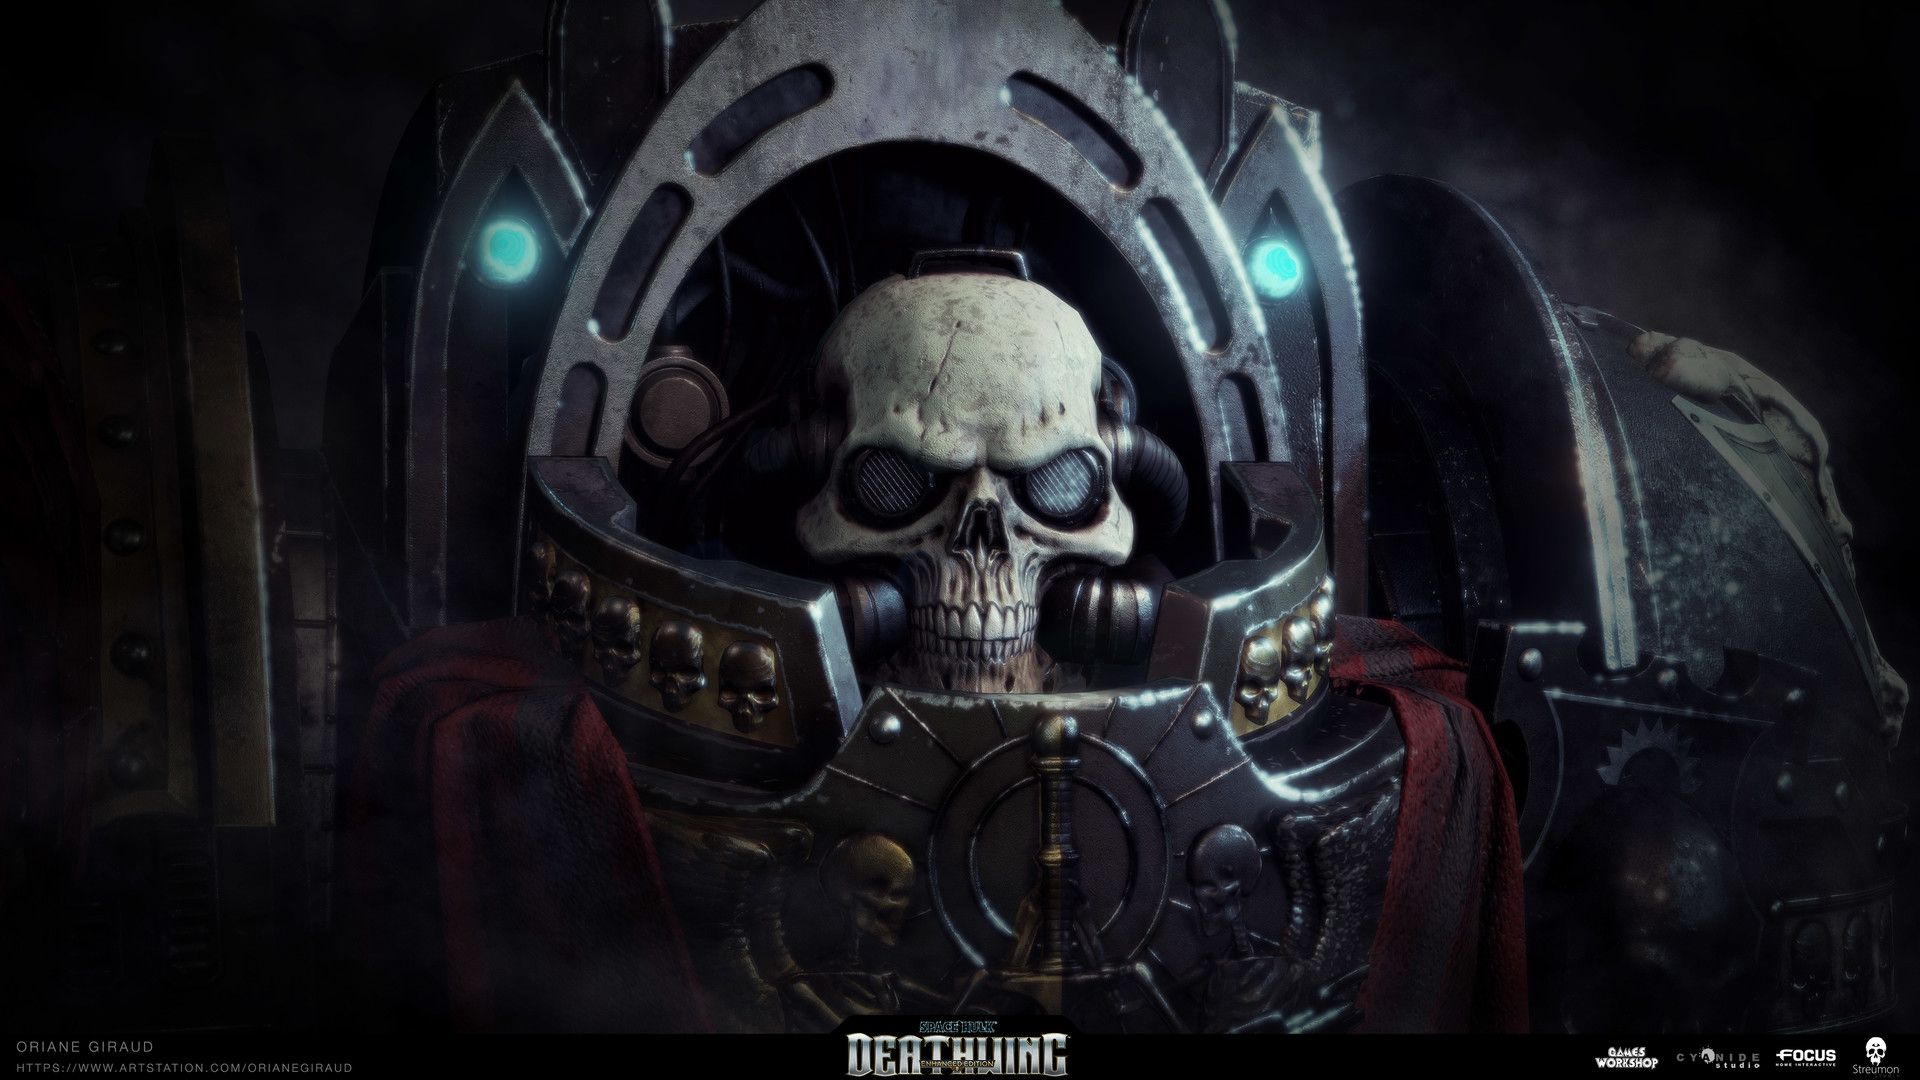 ArtStation - Space Hulk Deathwing - Interrogator Chaplain, Oriane